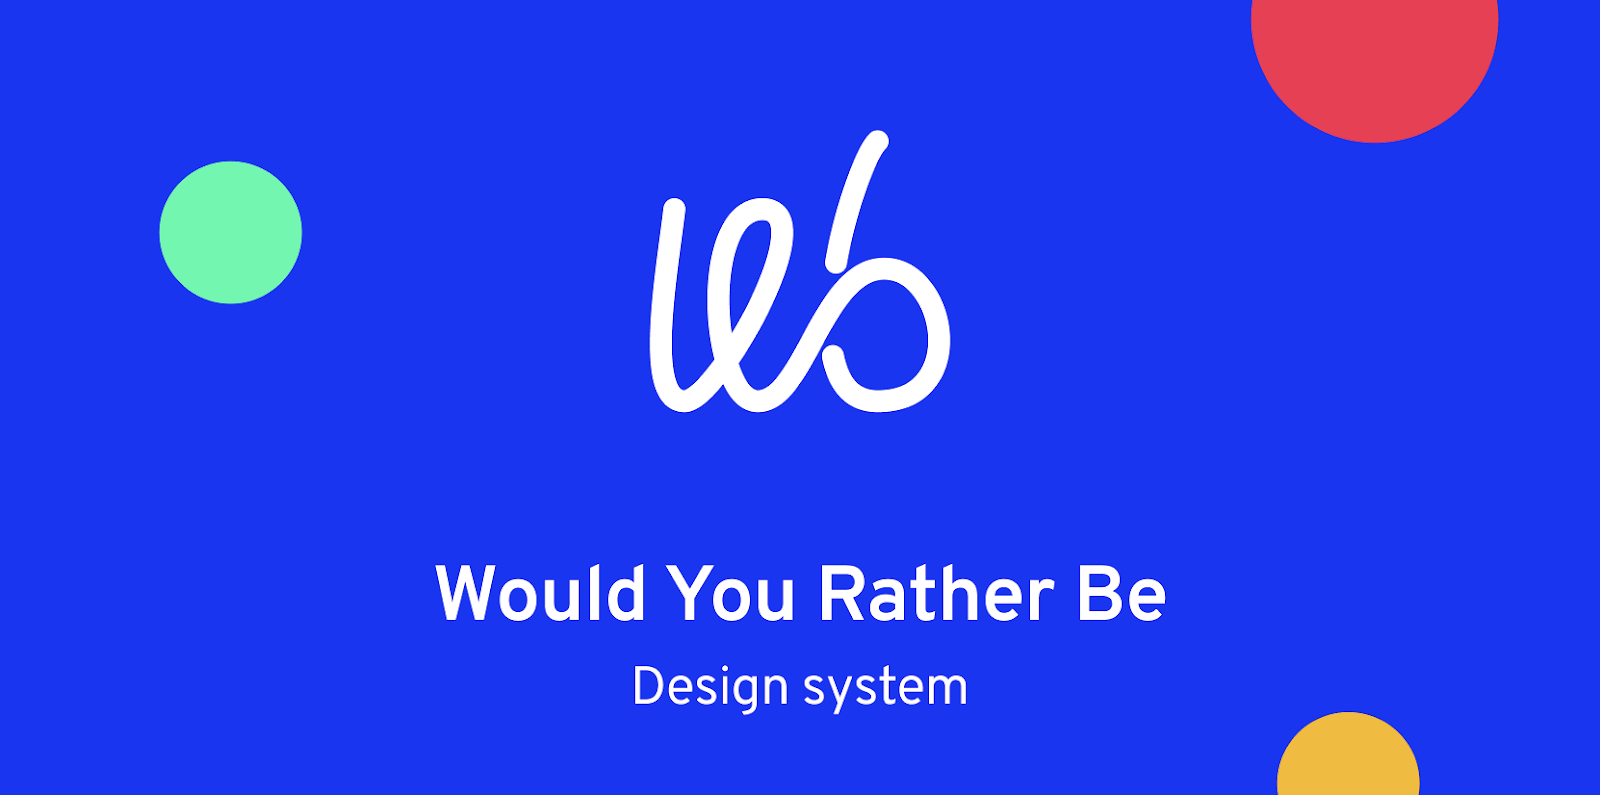 Our design system